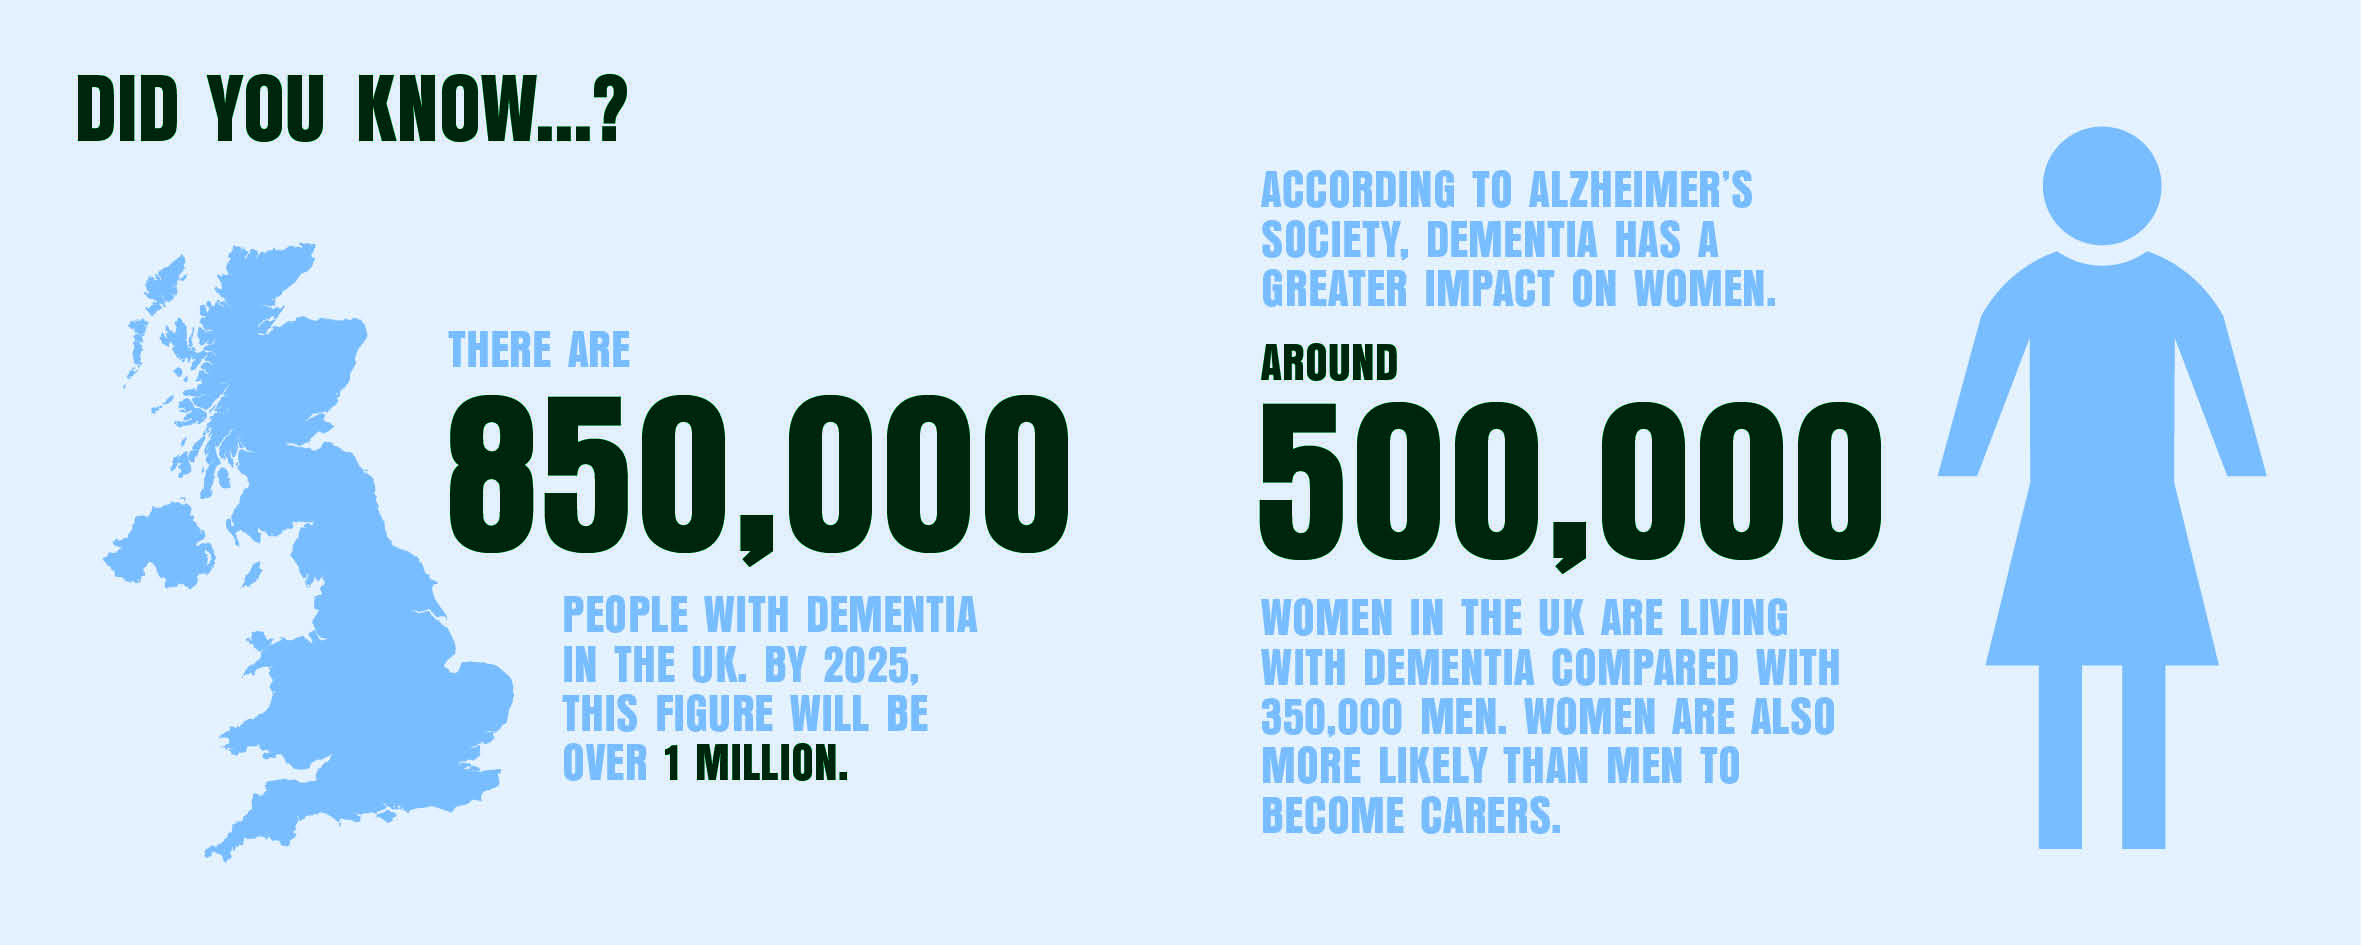 Did you know...? There are 850,000 people with dementia in the UK. By 2025 this figure will be over 1 million. According to Alzheimer's society dementia has a greater impact on women. Around 500,000 women in the UK are living with dementia compared with 350,000 men. Women are also more likely than men to become carers.